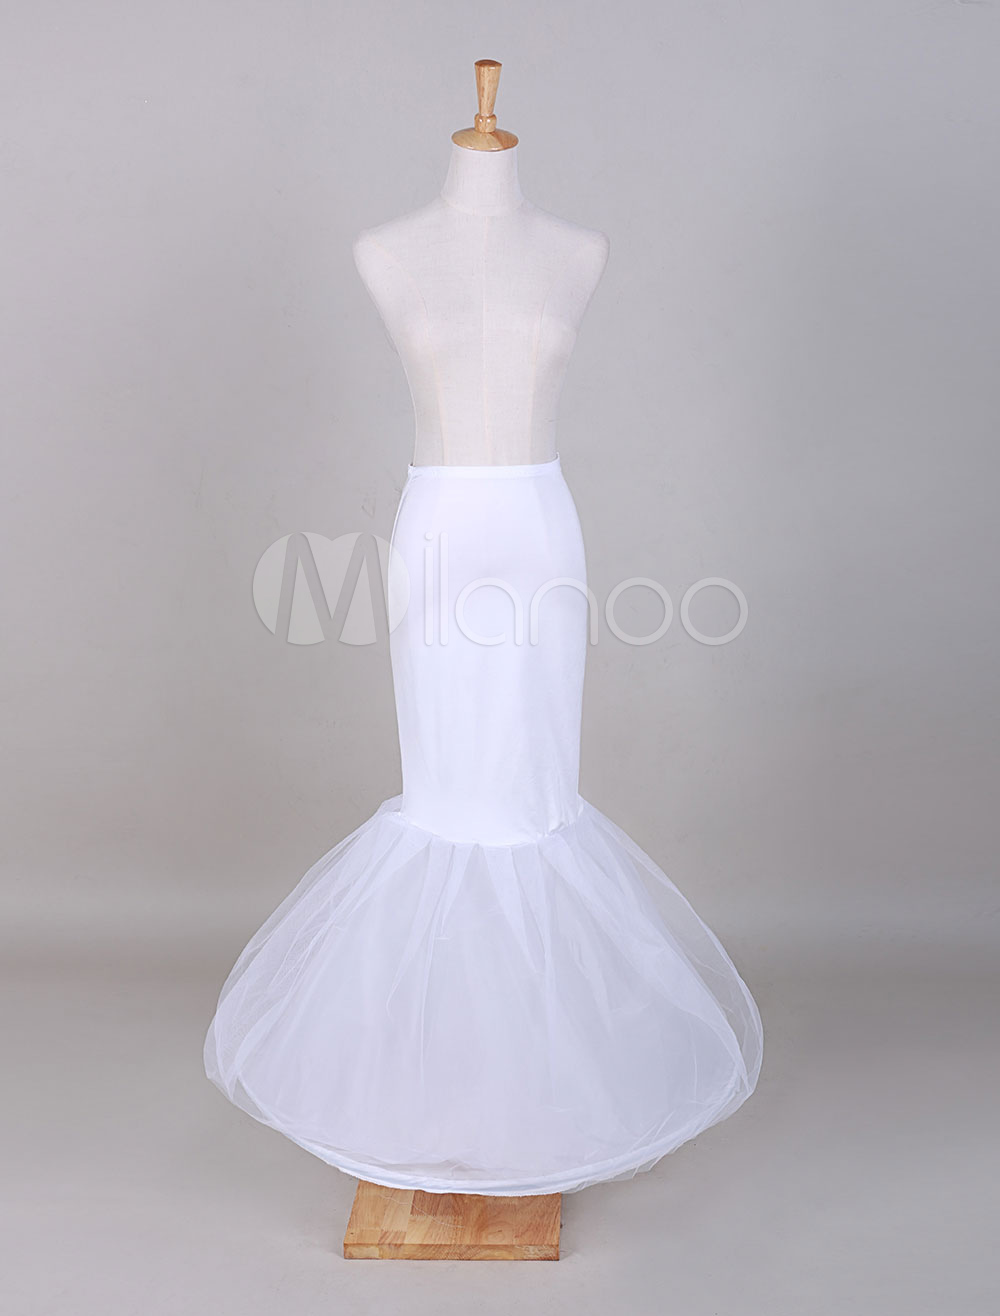 White Tulle Ball Gown Bridal Petticoat